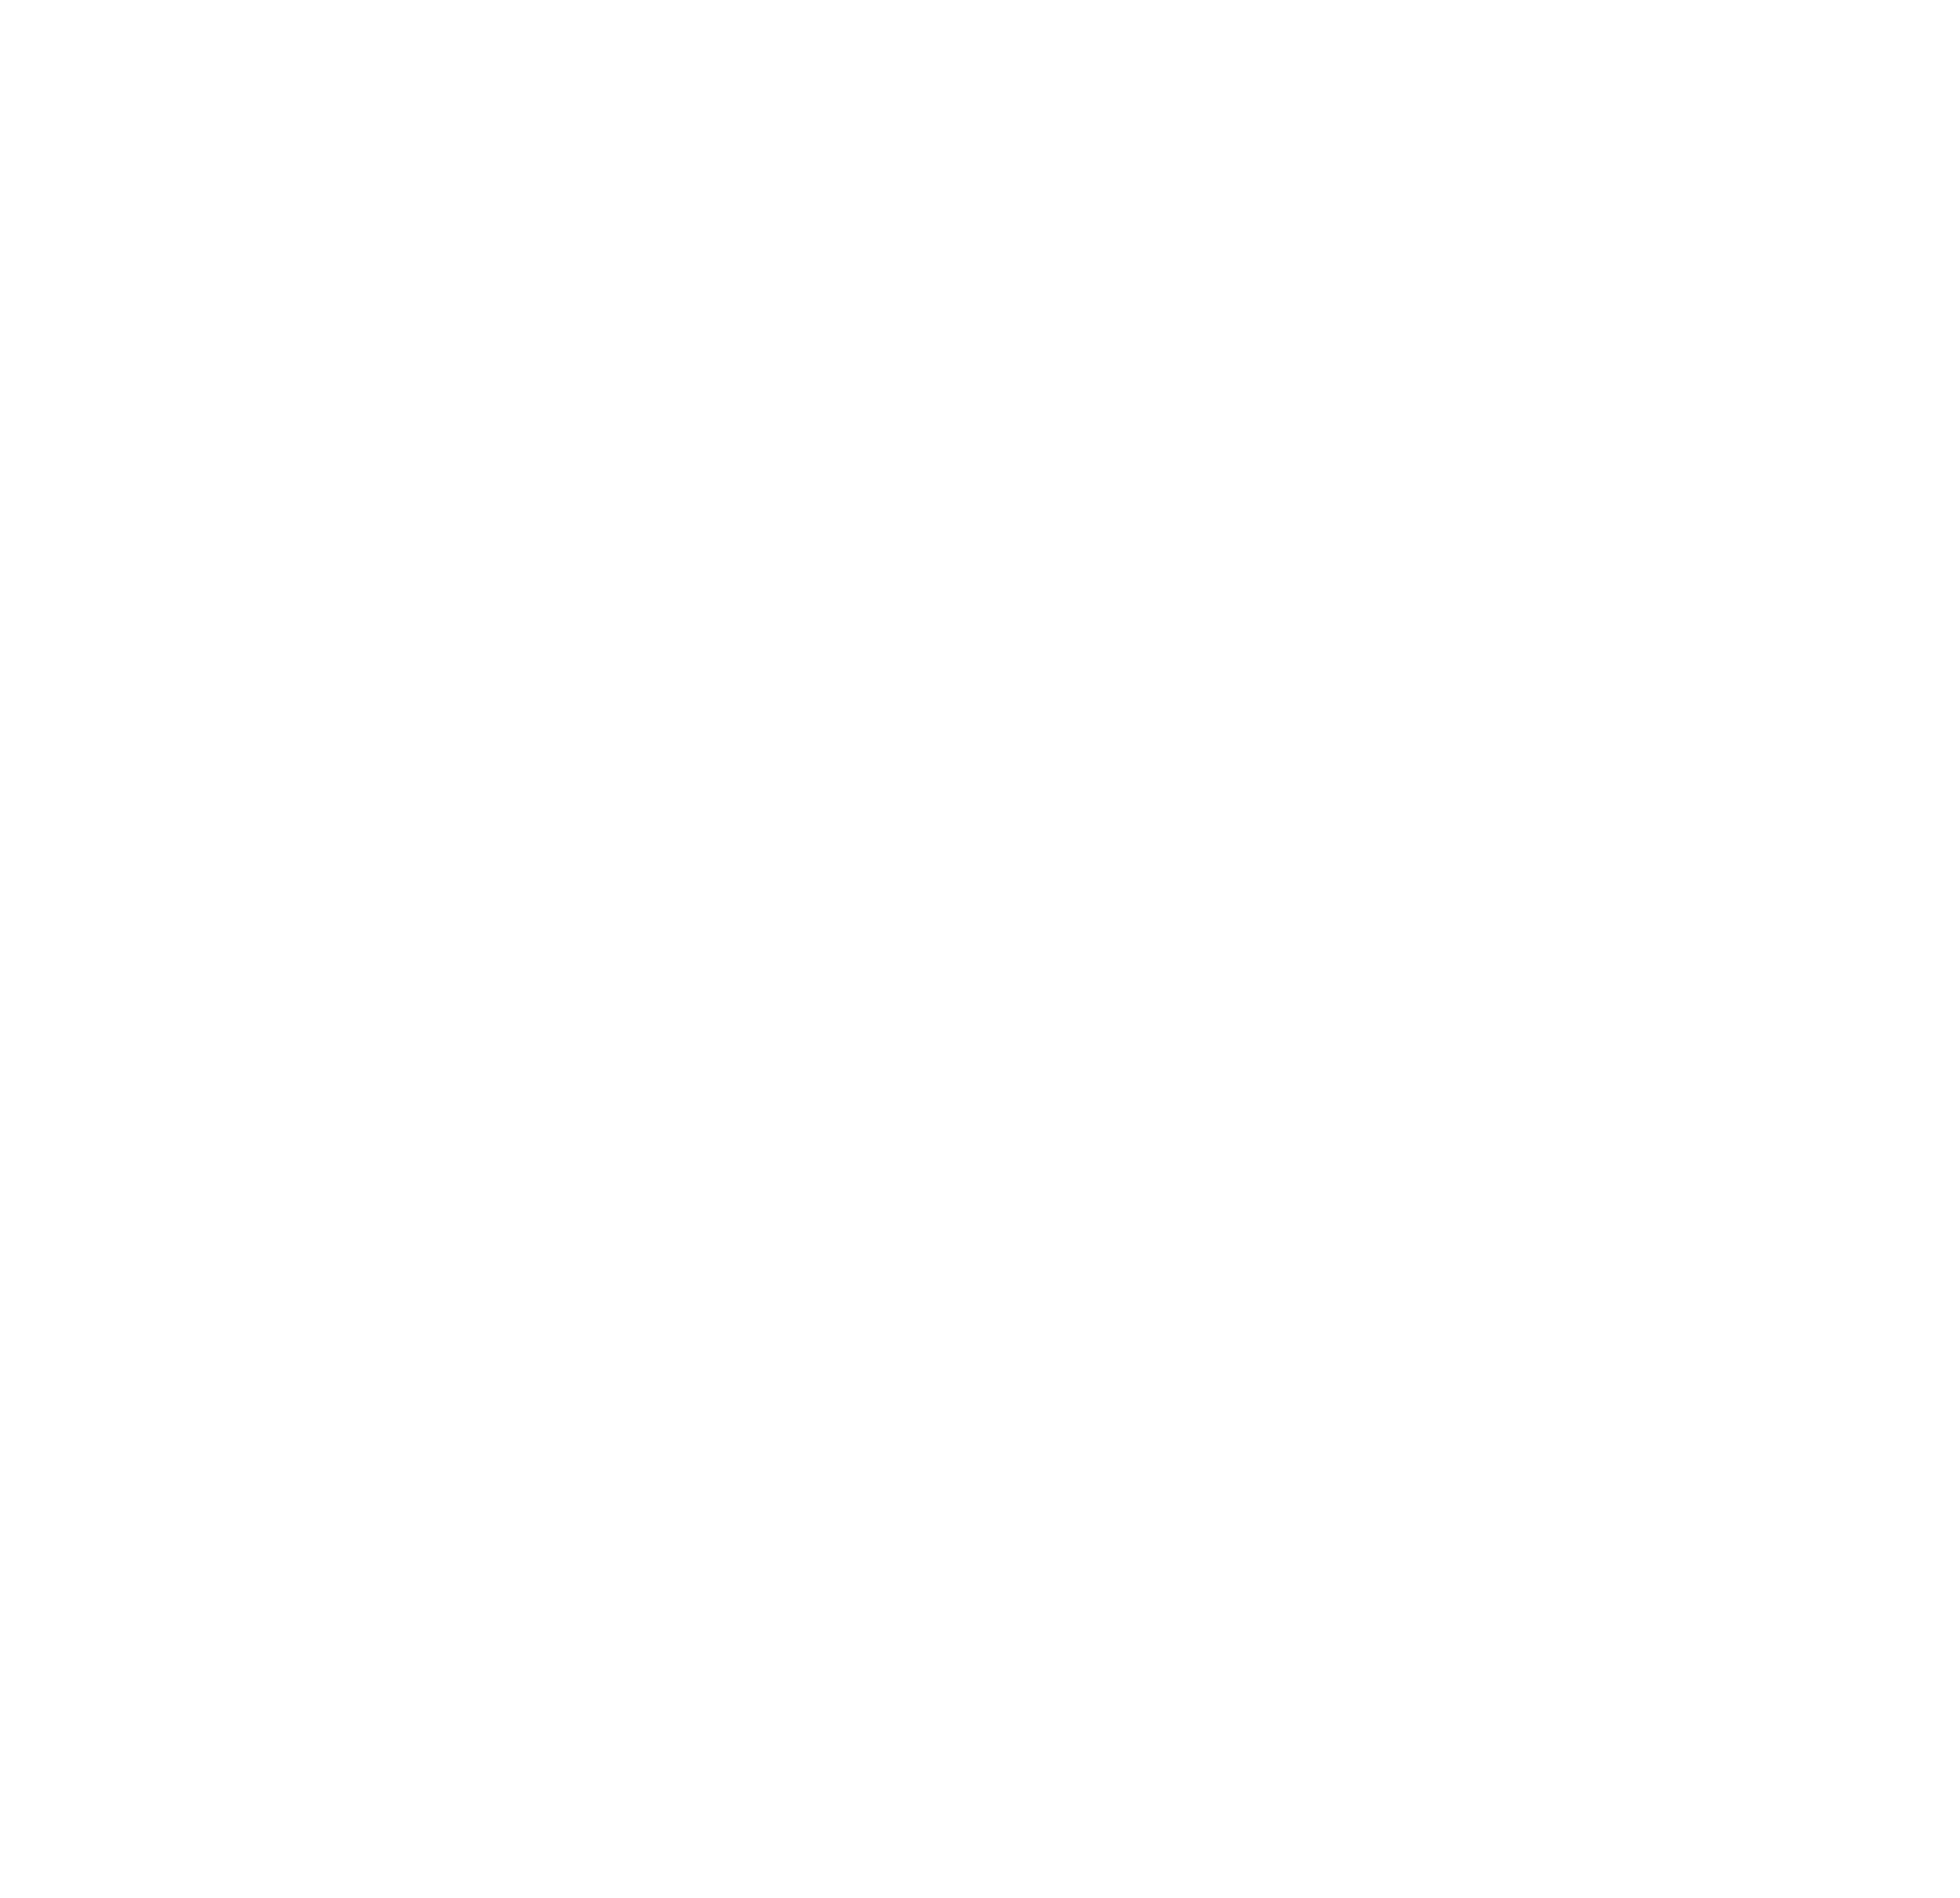 Merry christmas & happy new year clipart clipart freeuse Merry Christmas and Happy New Year Text PNG Clip Art Image ... clipart freeuse